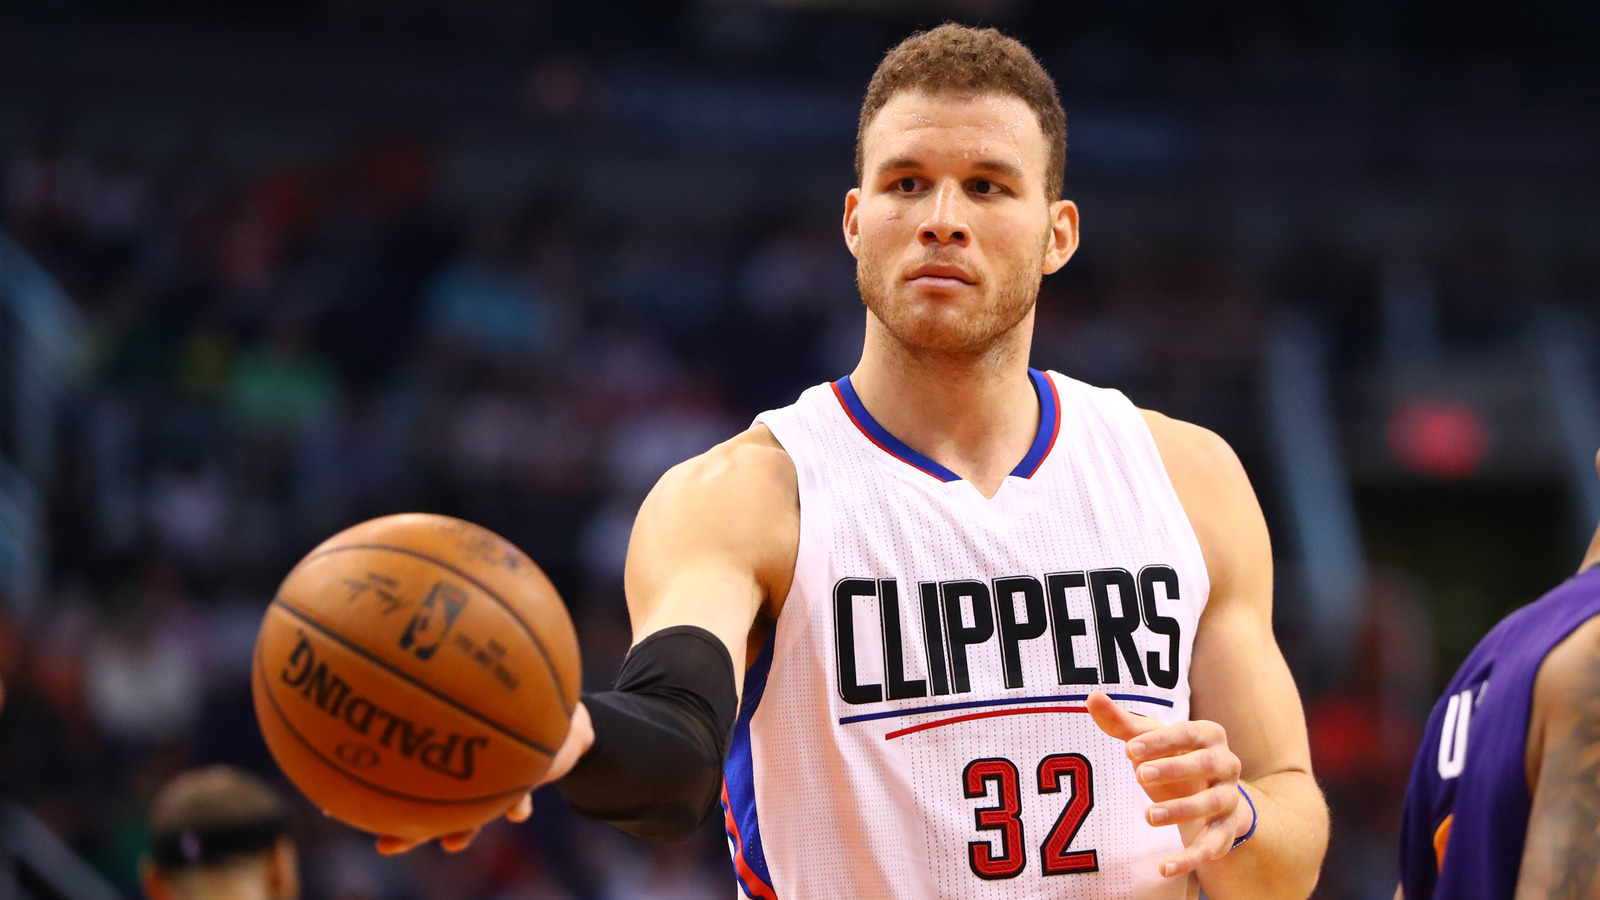 La clippers the impact of blake griffins surgery on the team foxsports com - Blake Griffin May Stay With The Clippers Despite Chris Paul Being Traded To The Rockets Mark J Rebilas Usa Today Sports